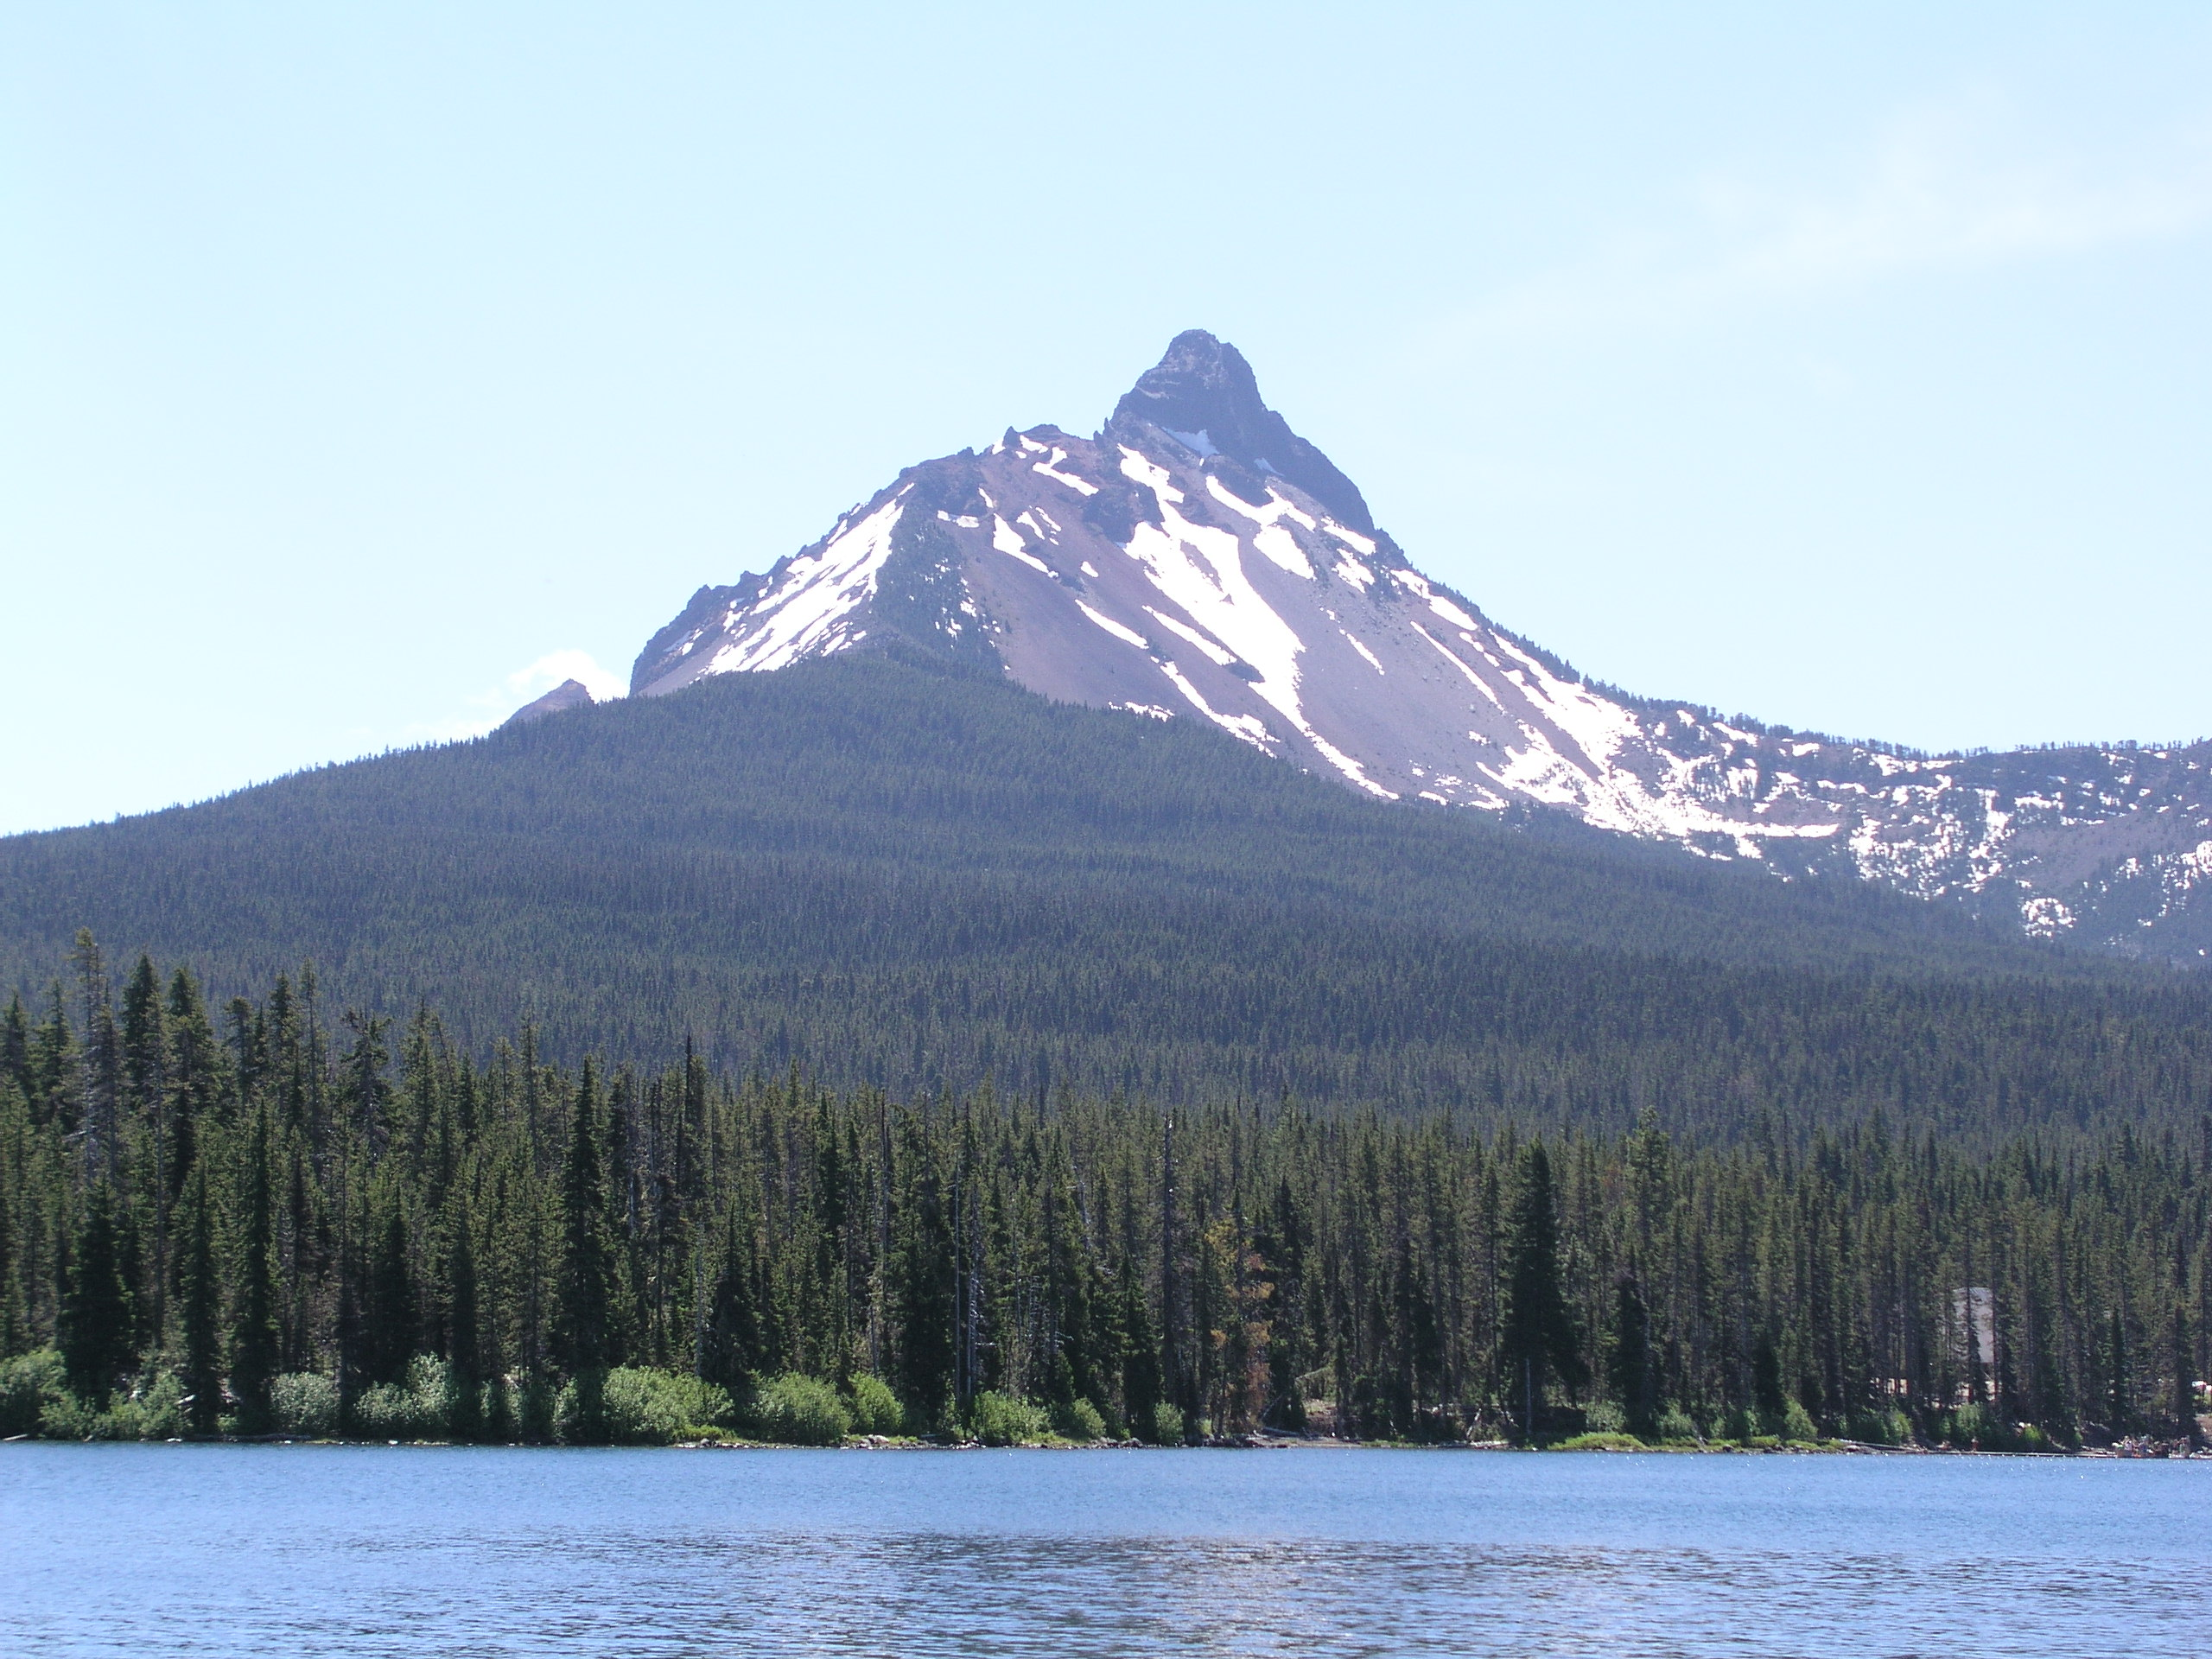 Image of the Mt. Washington Wilderness